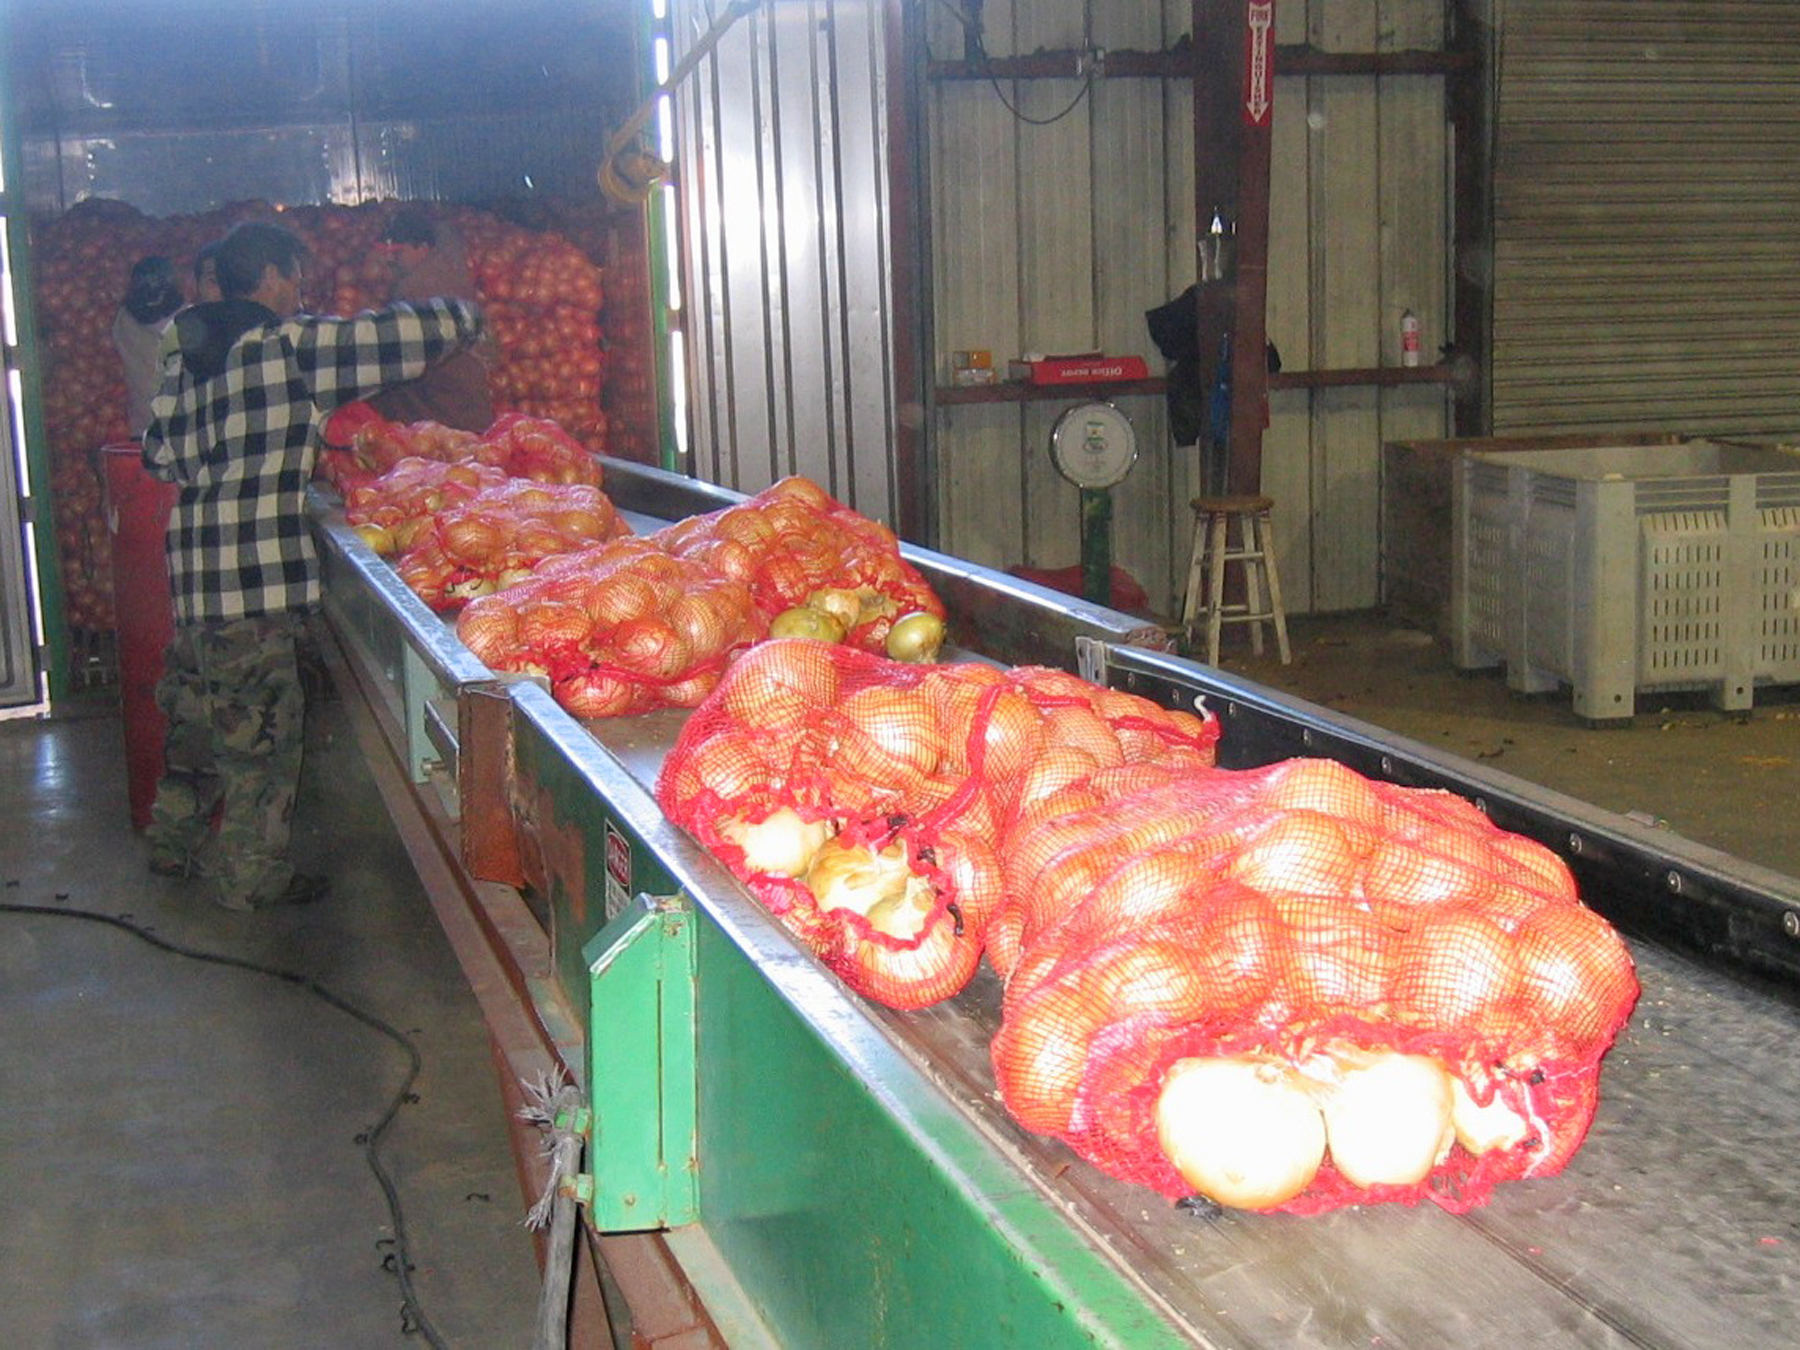 Onions are bagged at Bland Farms before storage and shipment.